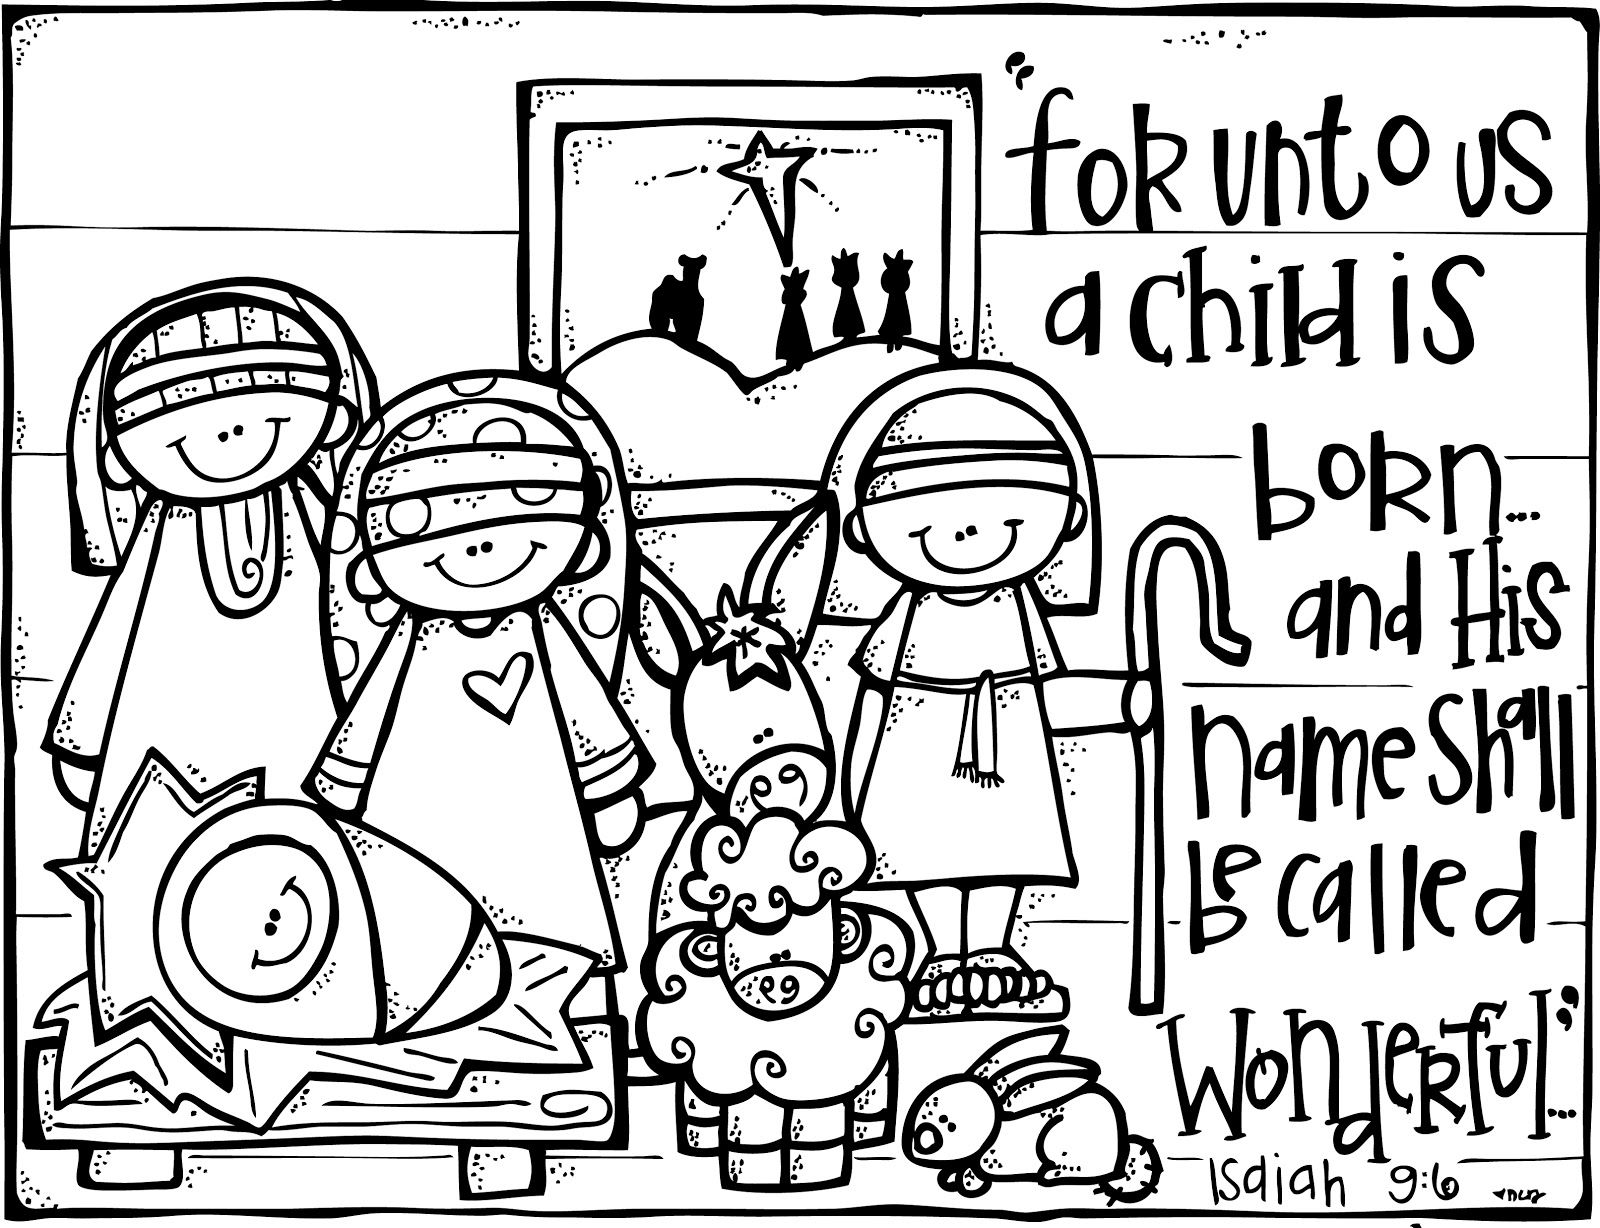 free christian christmas coloring pages printable christmas coloring page for kids printable coloring free christian pages christmas